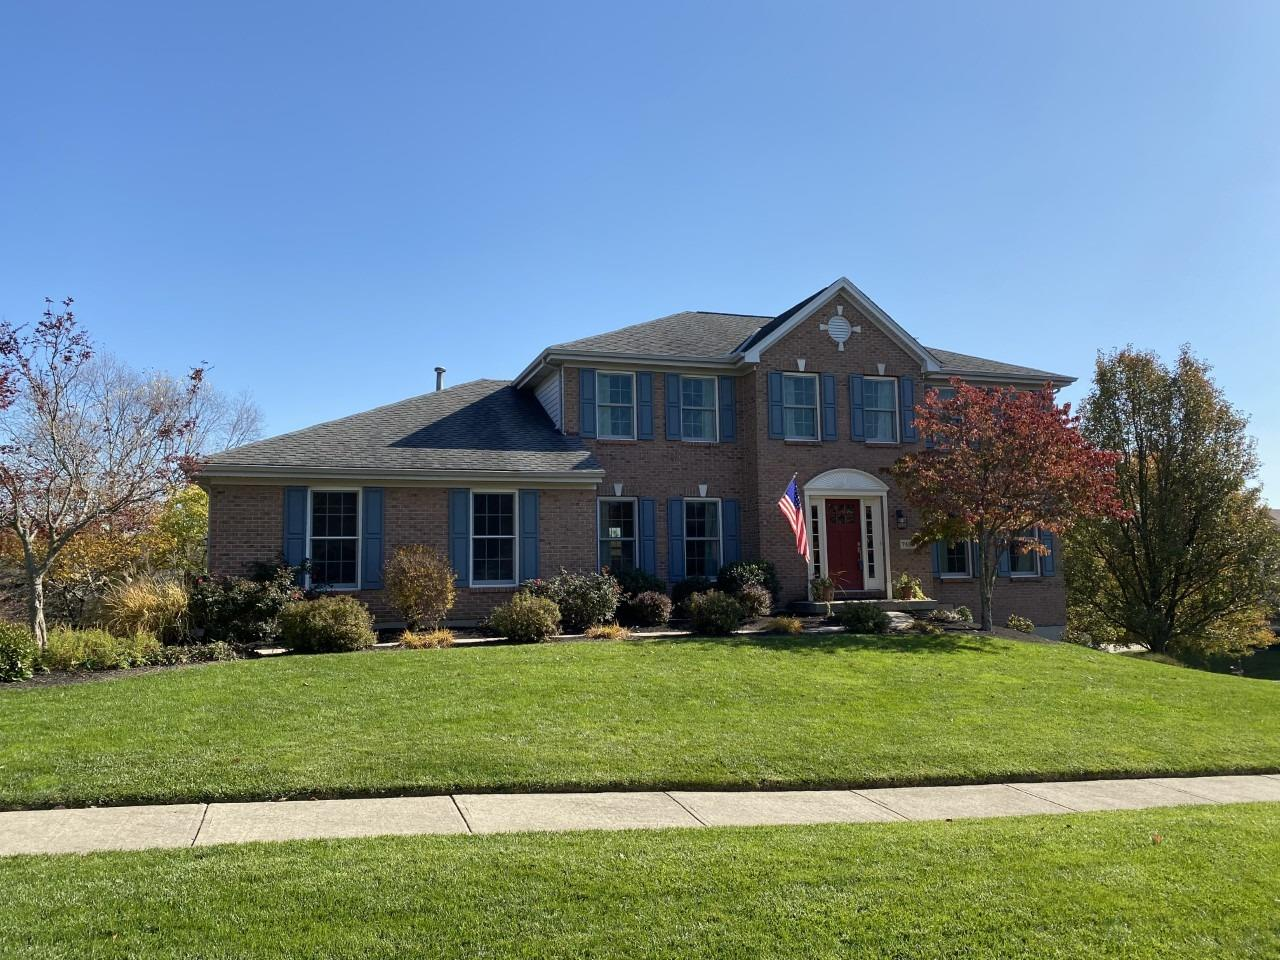 Photo of 7480 Oak Leaf Lane, West Chester, OH 45069